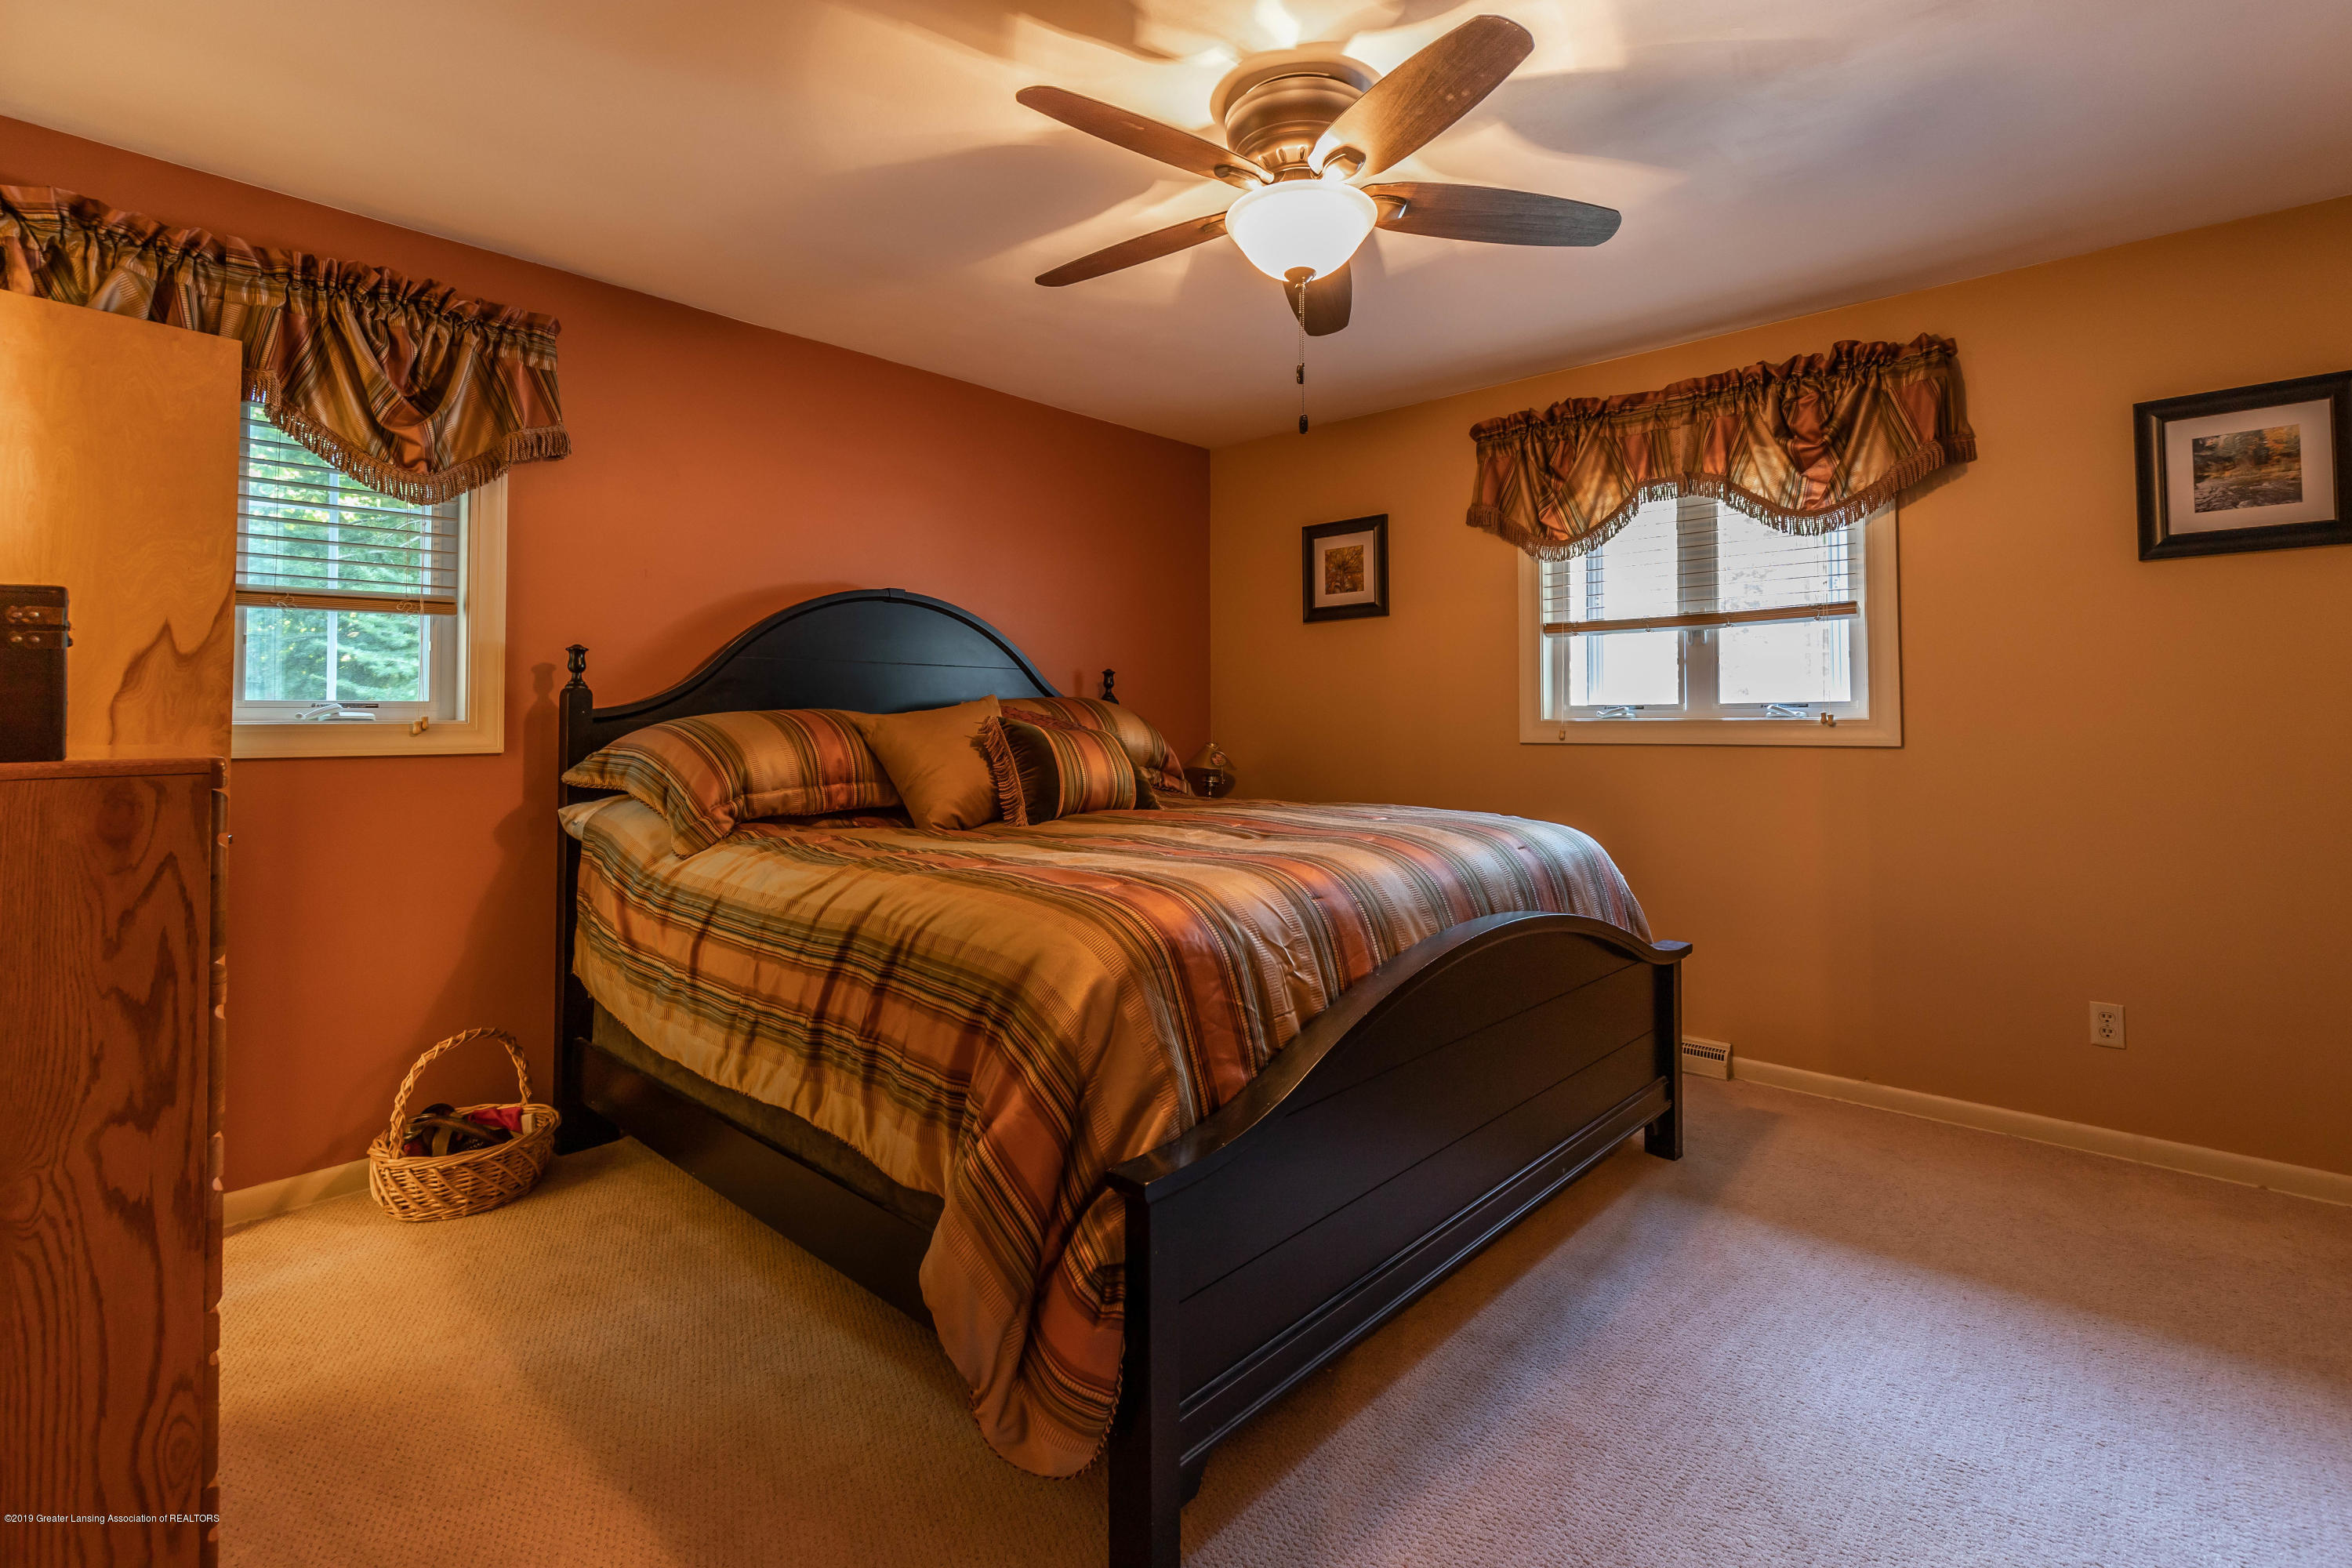 4913 Sugarbush Ln - Bedroom - 18